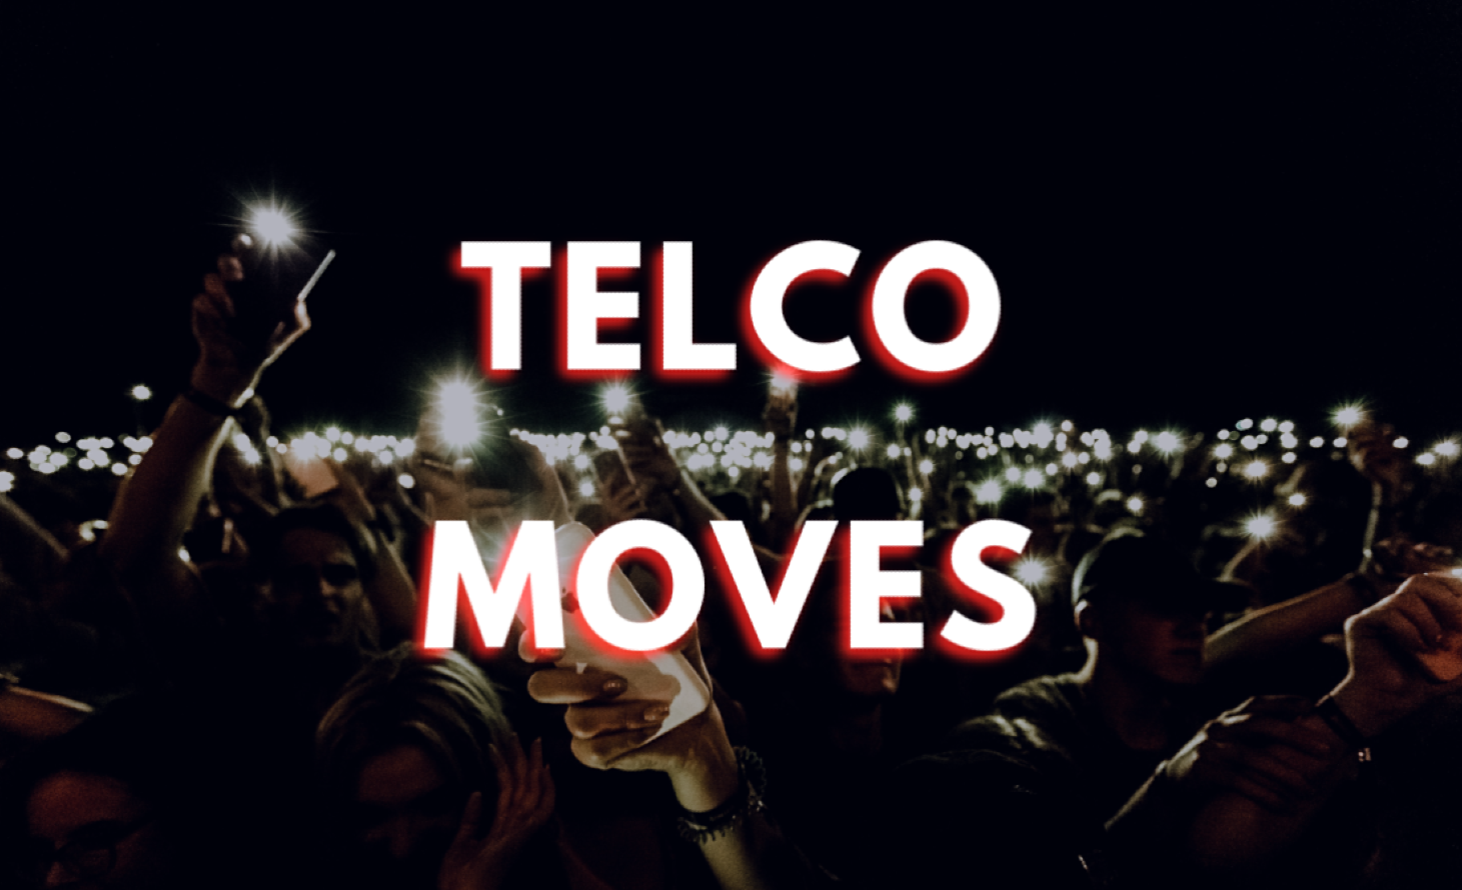 telco moves 2020 week 10